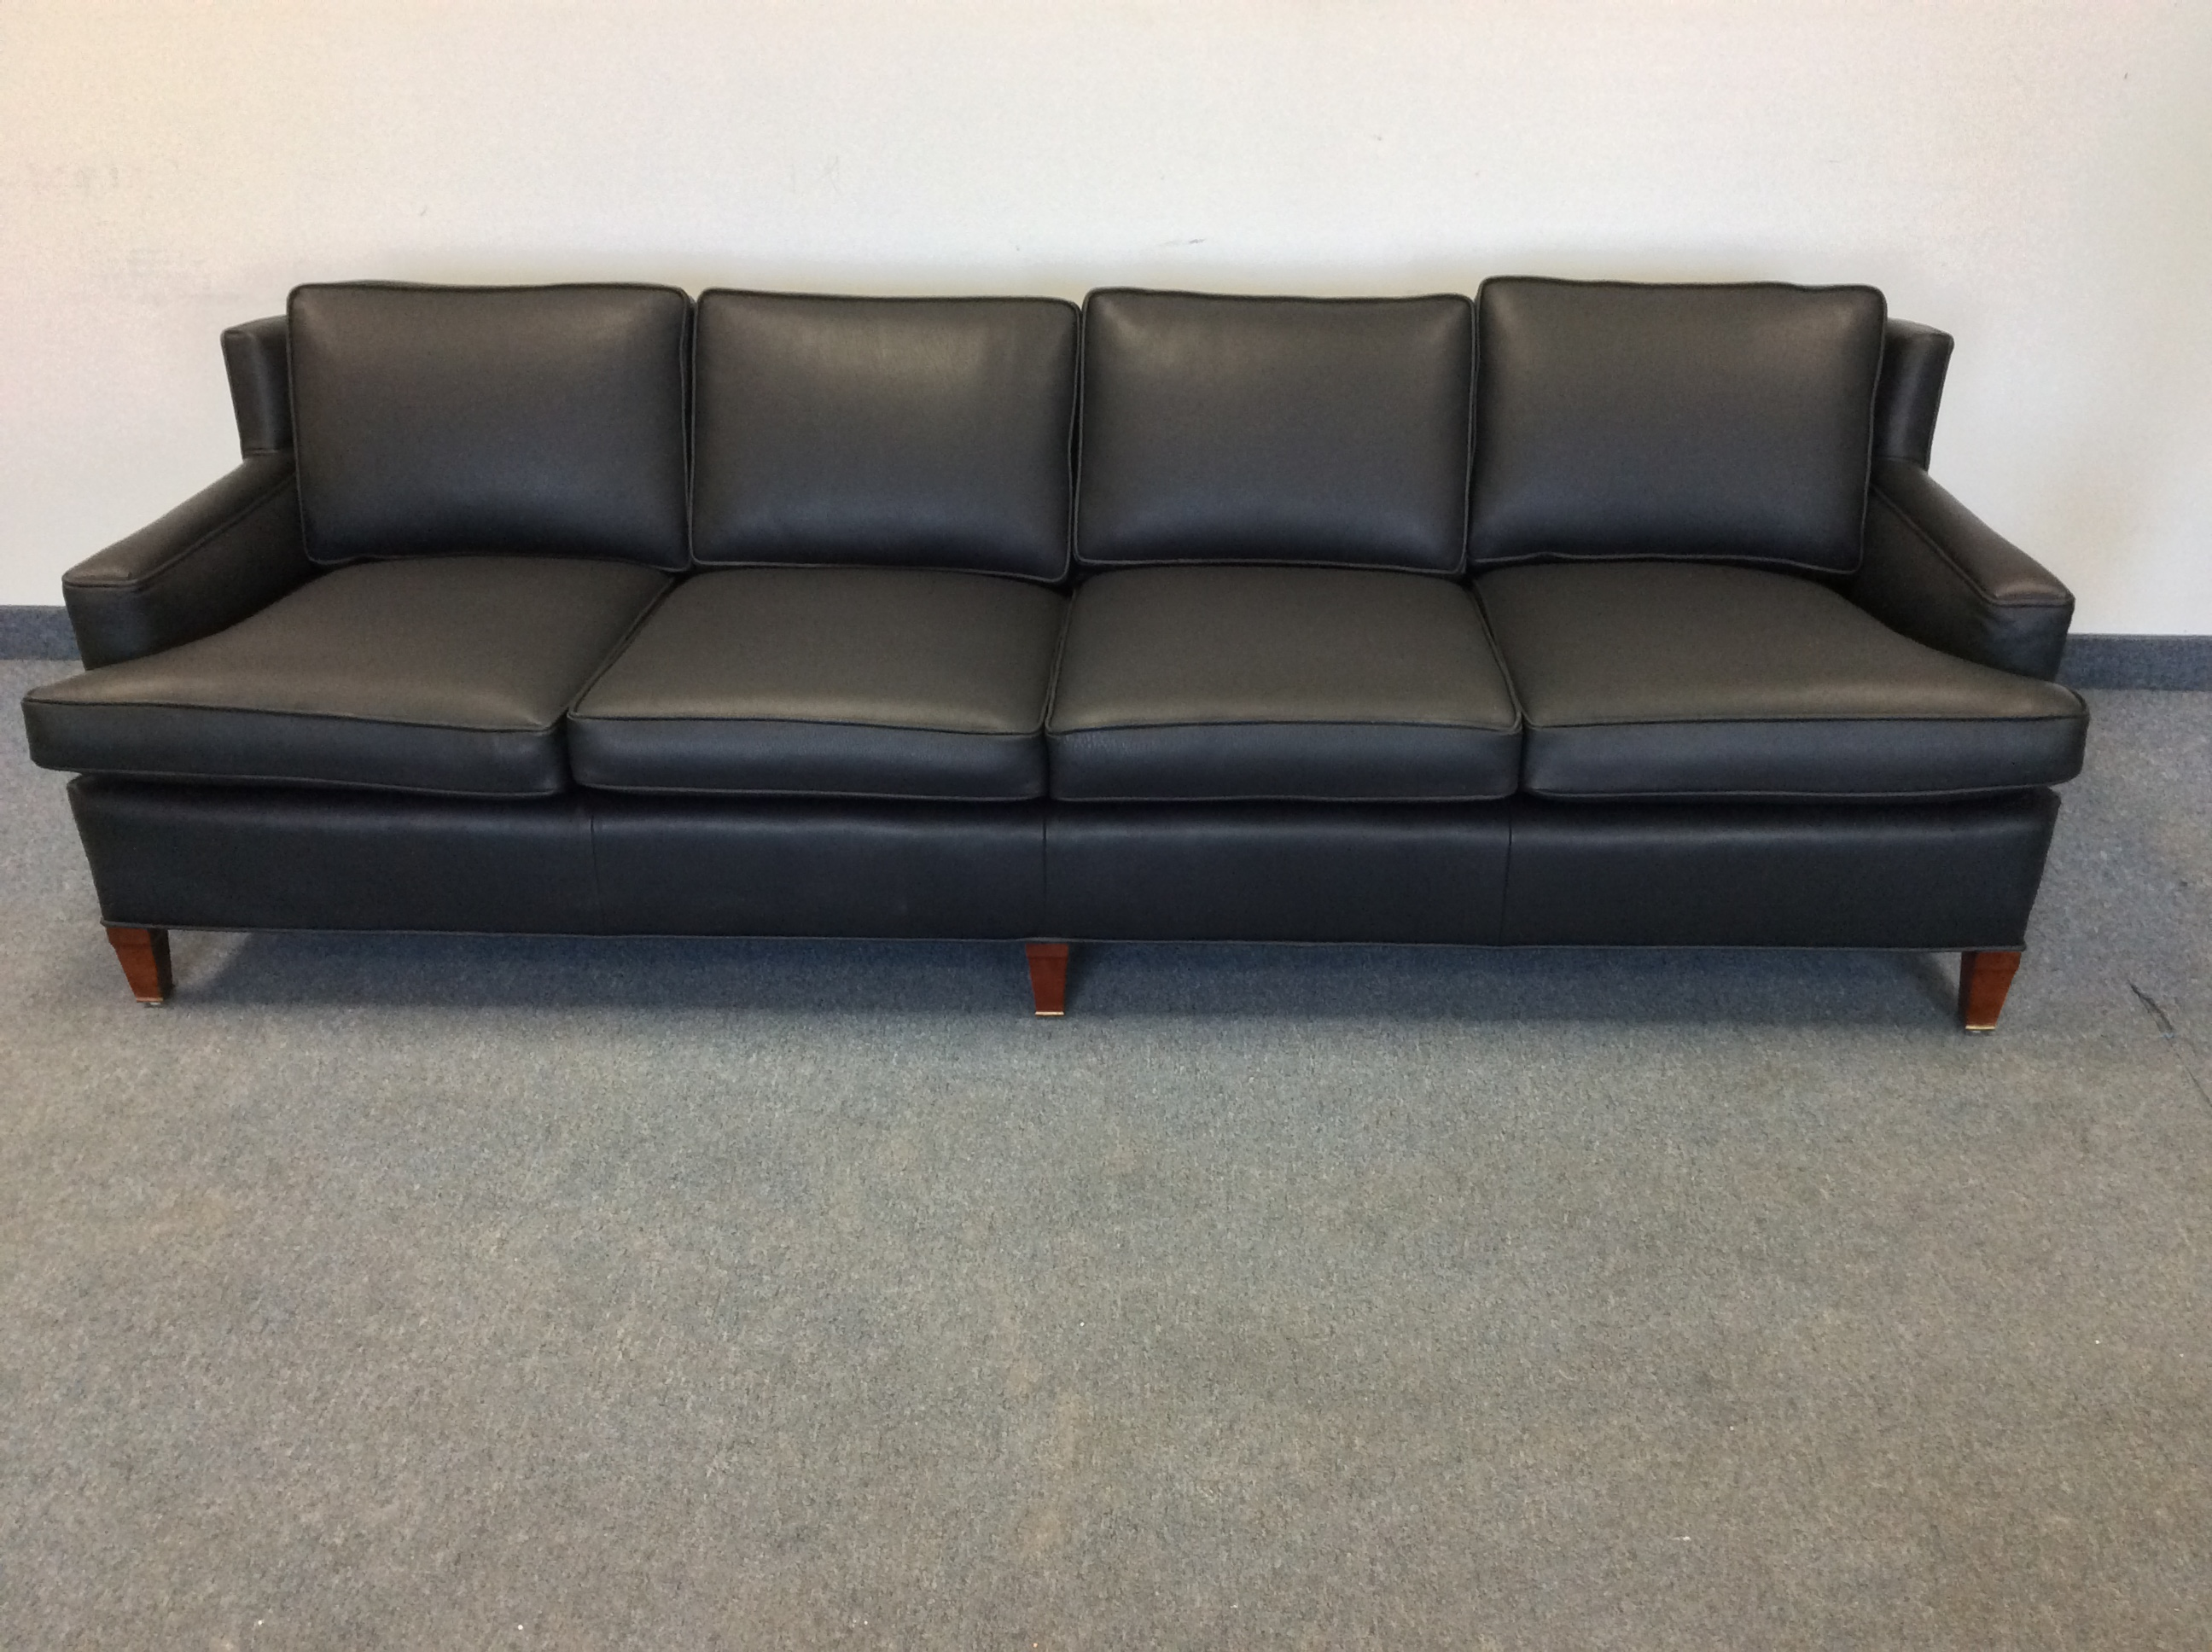 reupholster sofa in leather large back cushion covers img 2151 gomillion furniture services inc